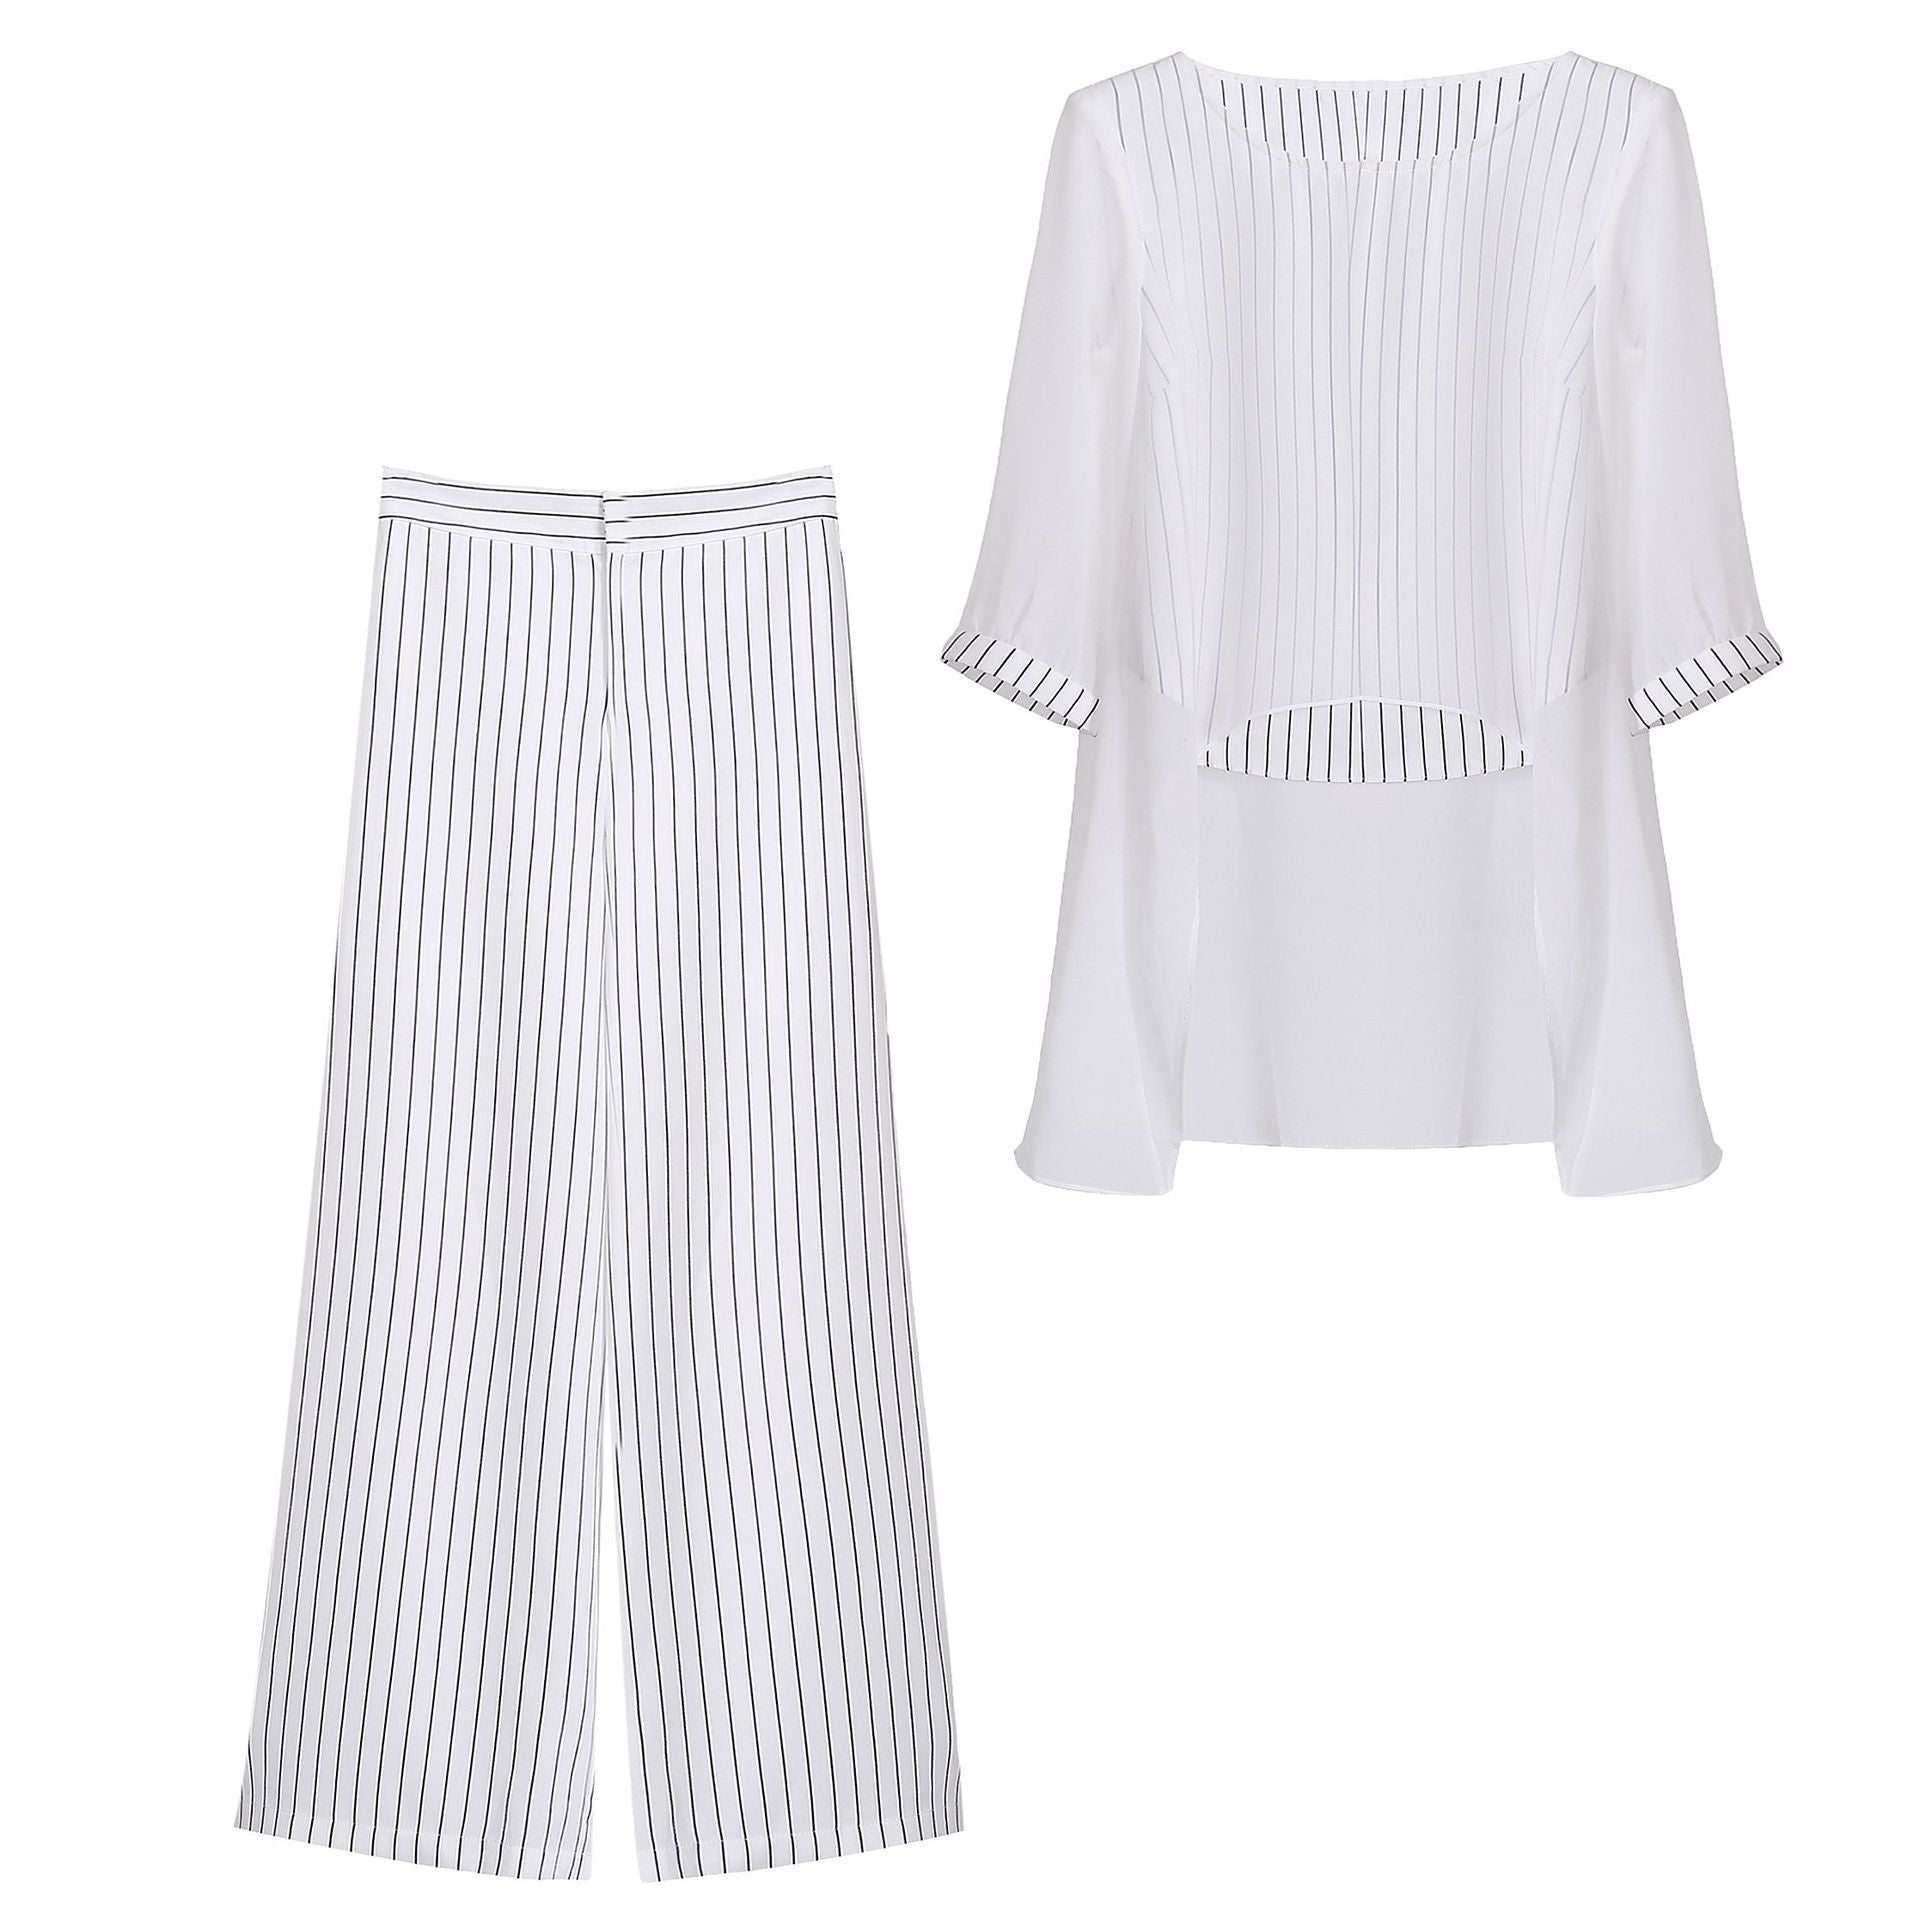 Summer Elegant White/Black Flower Printed 3/4 Sleeve Striped Chiffon Blouse&Culotte Two Piece Set